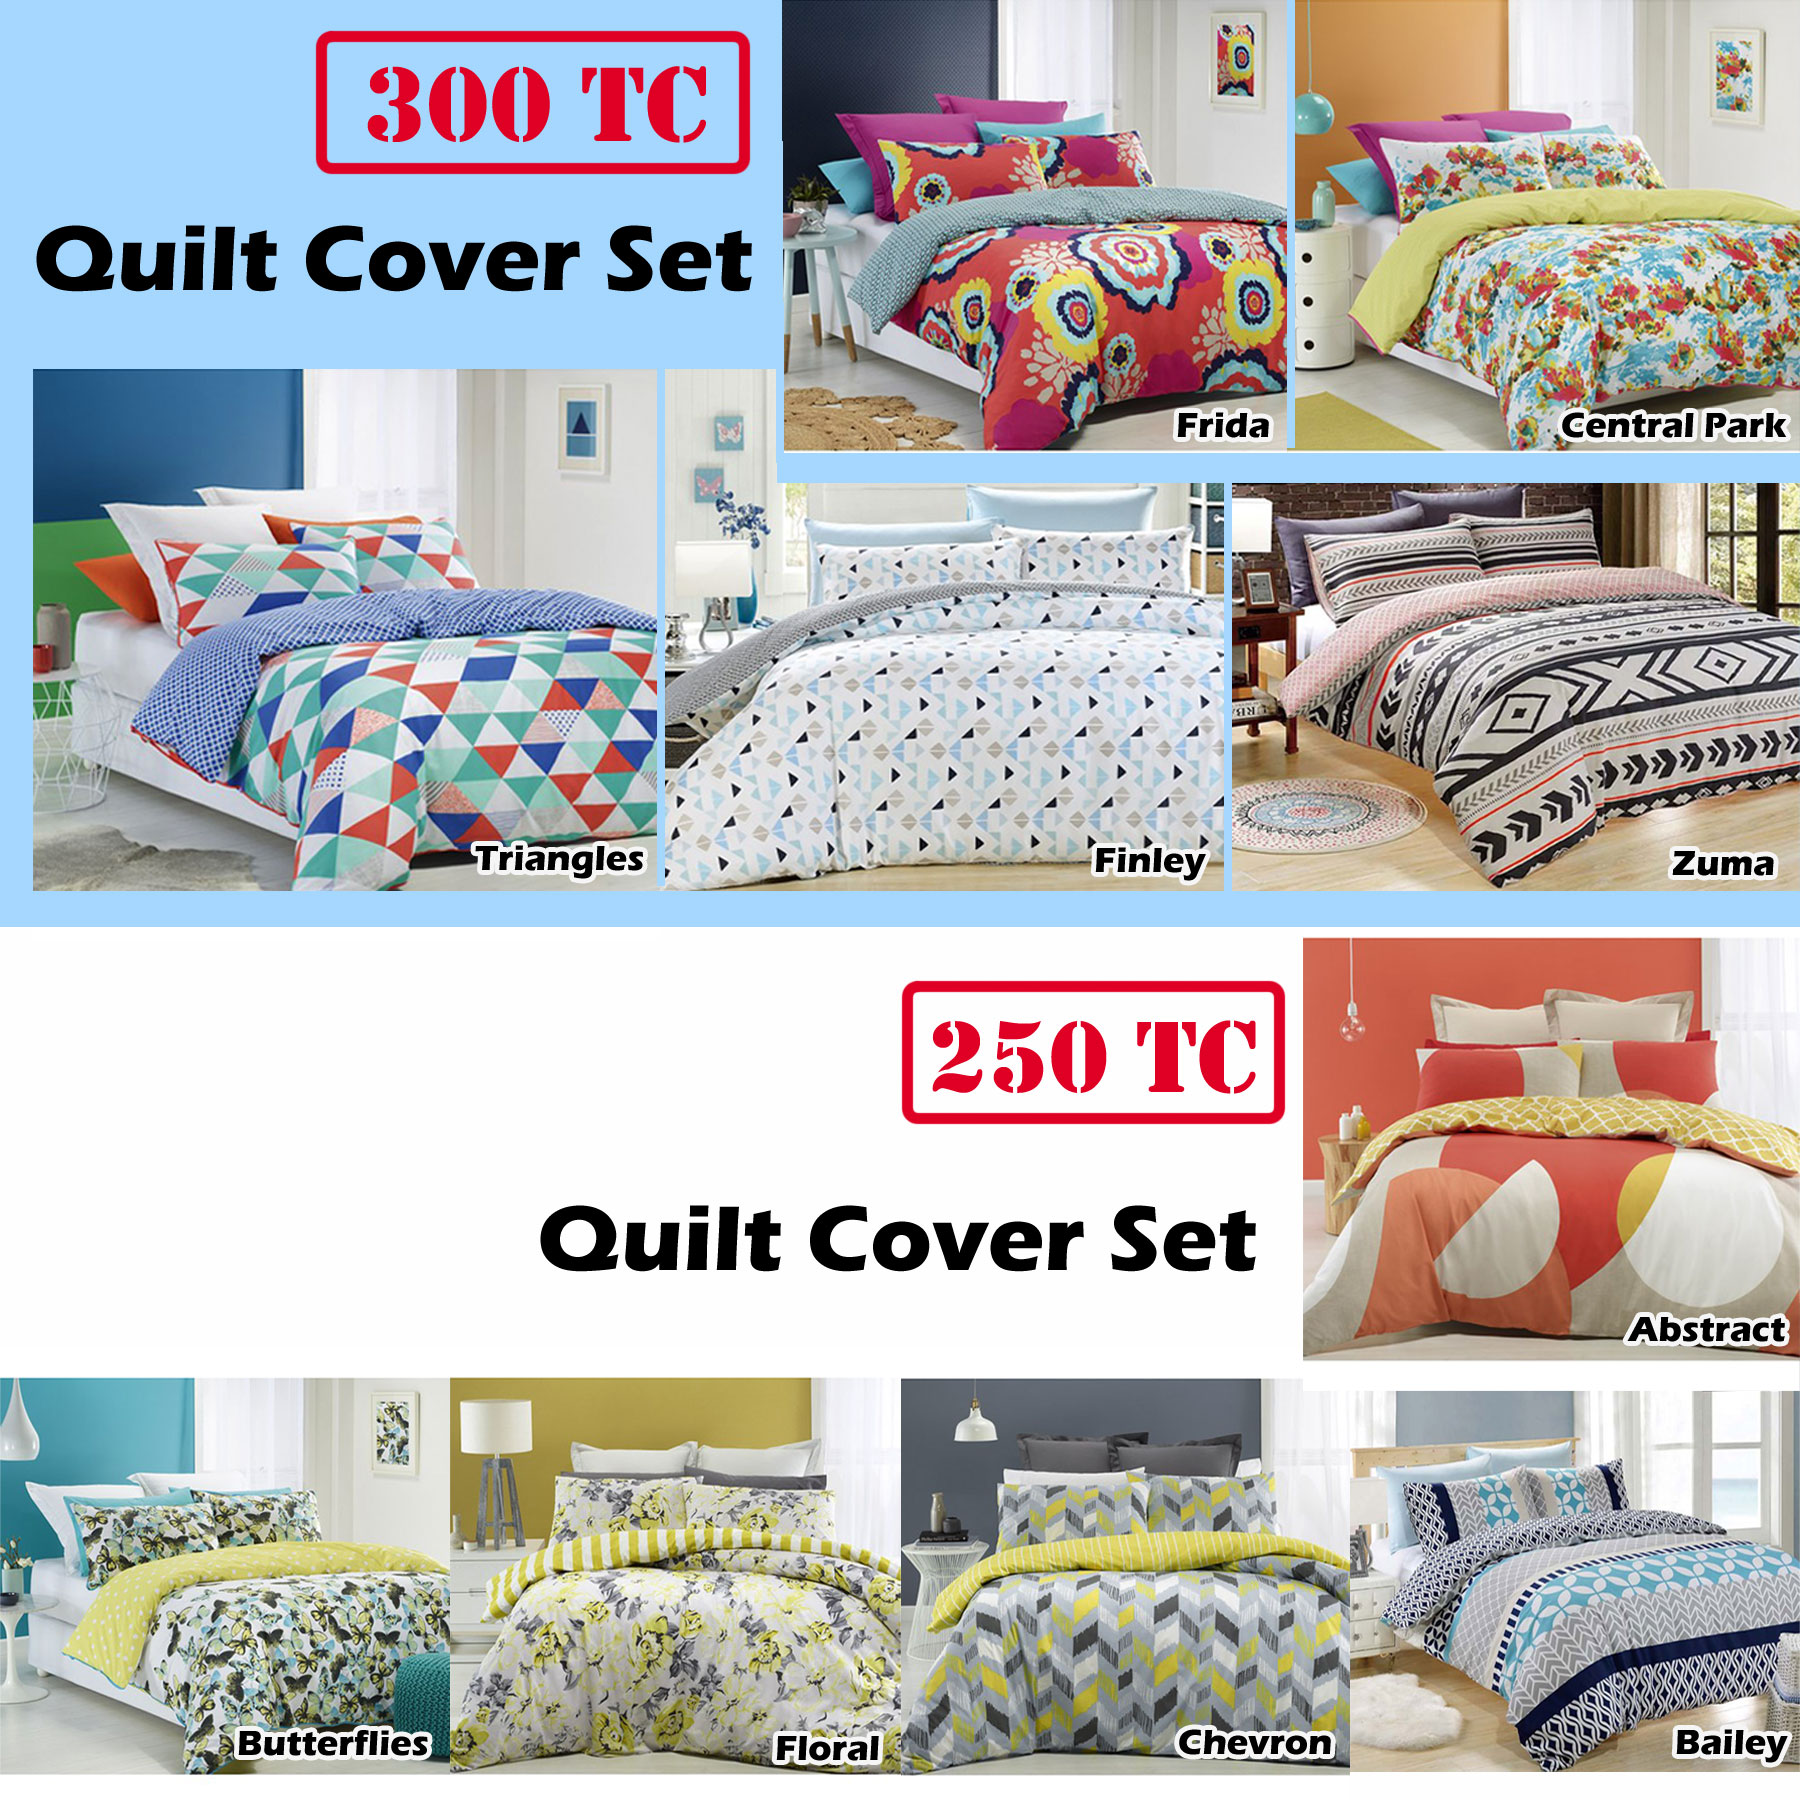 cotton queen duvet regard applied wonderful your to cover home with accessories covers white walmart decor